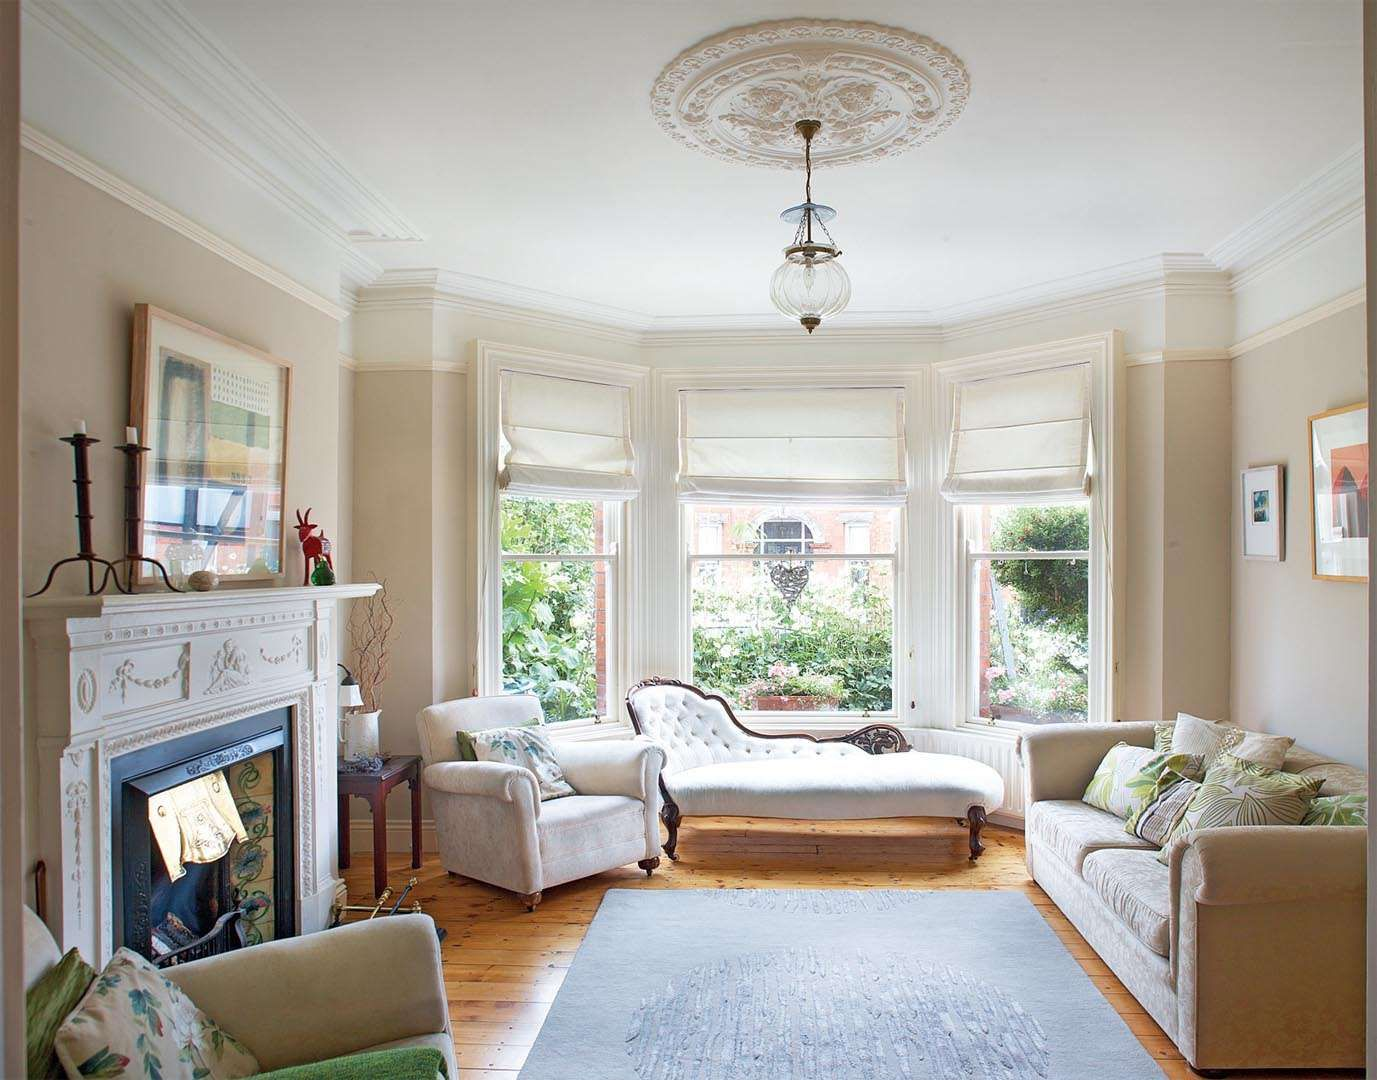 Renovating a Victorian townhouse | Real Homes. That couch | Home ...